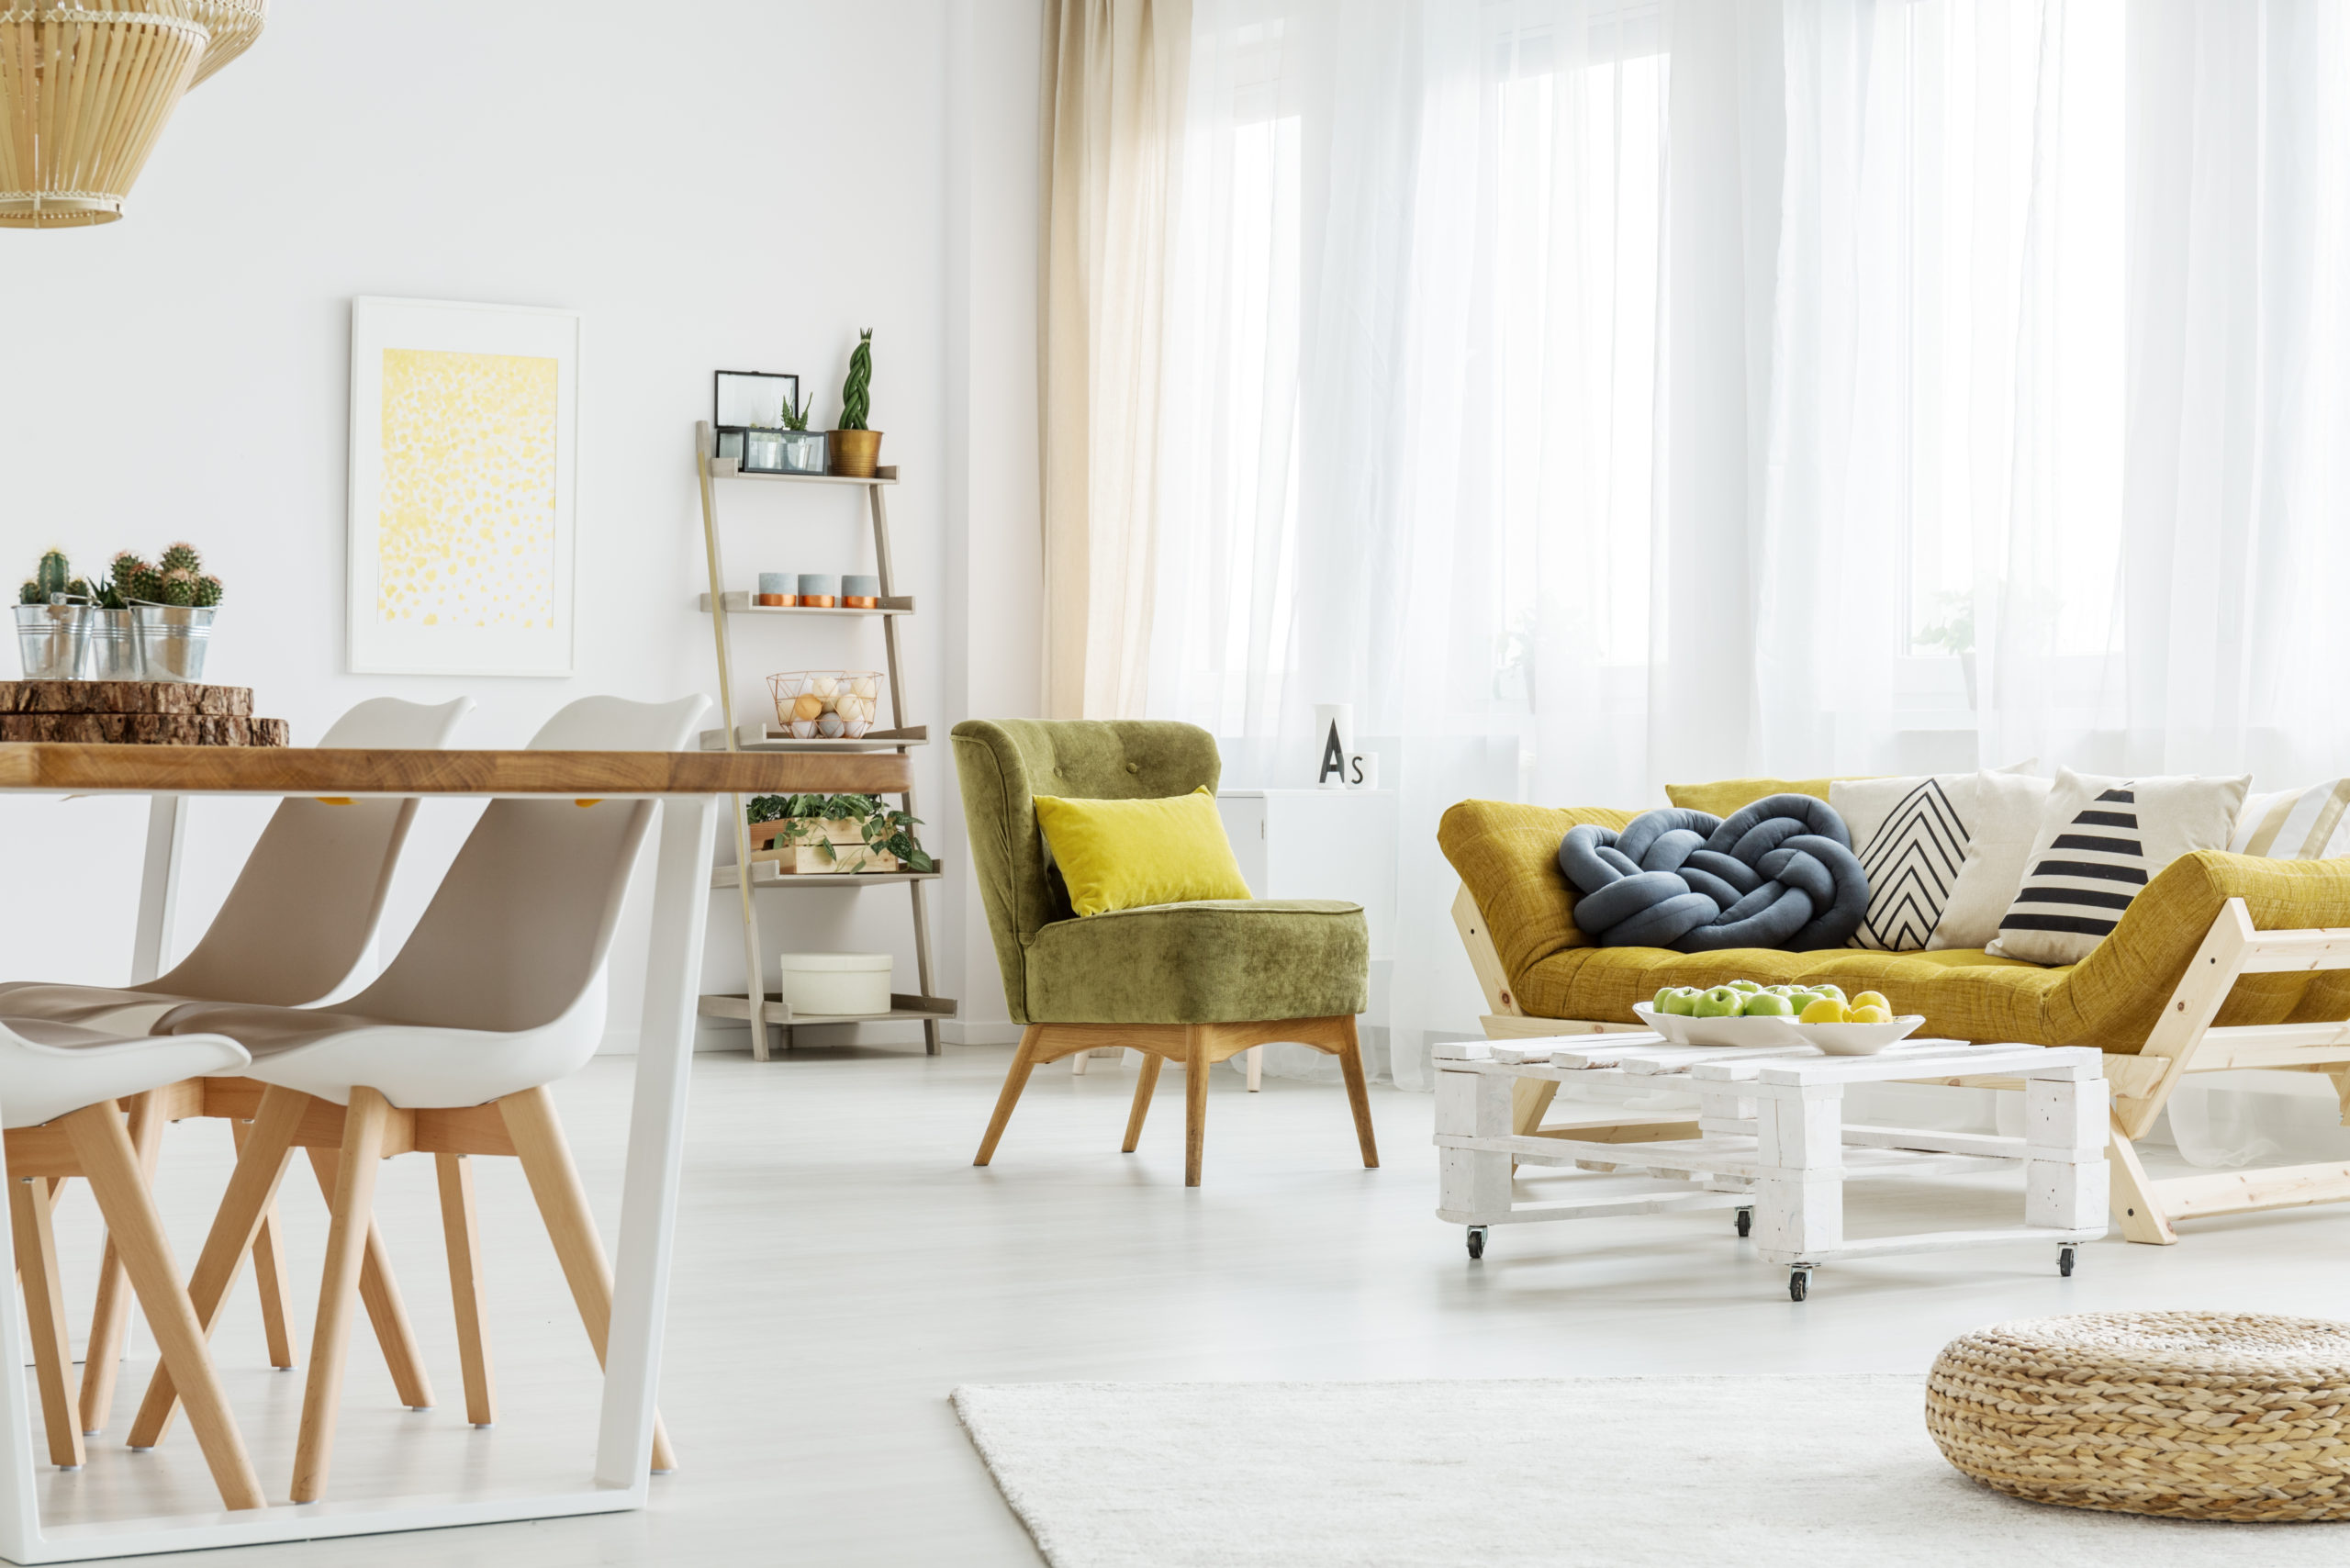 Multi-functional Furniture That Transforms Small Spaces